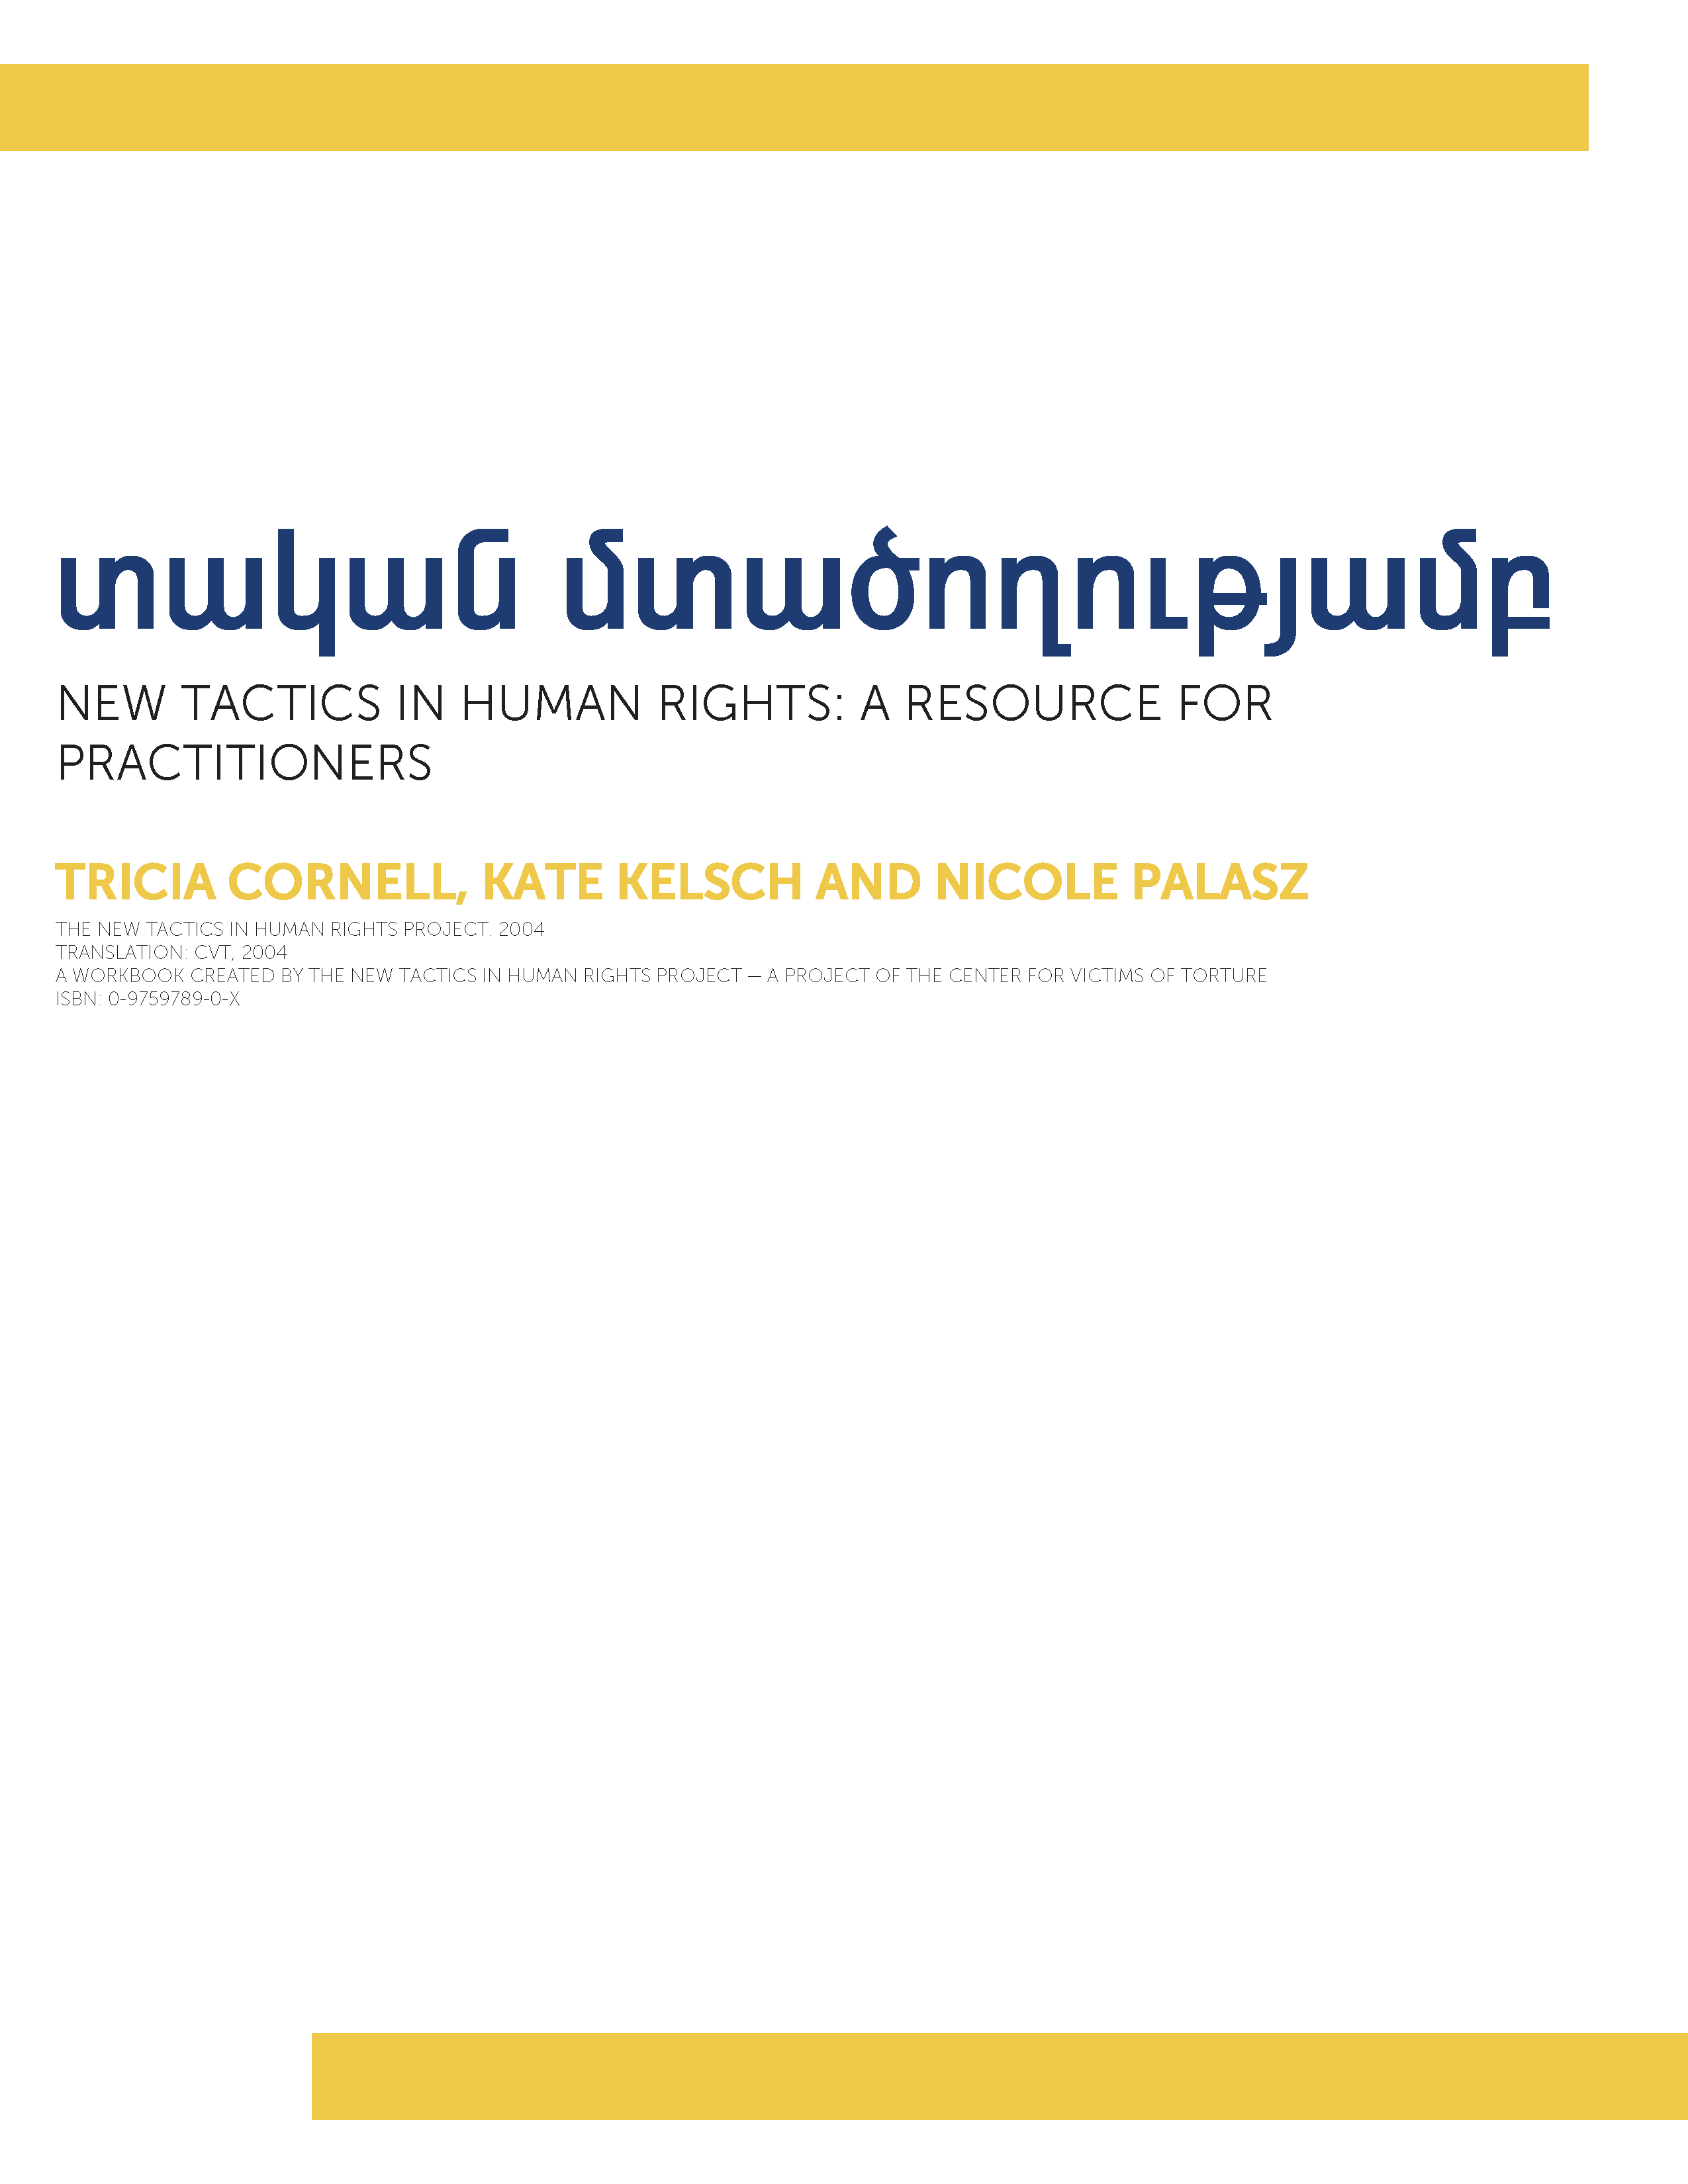 New Tactics in Human Rights: A Resource for Practitioners (Armenian–partial translation)